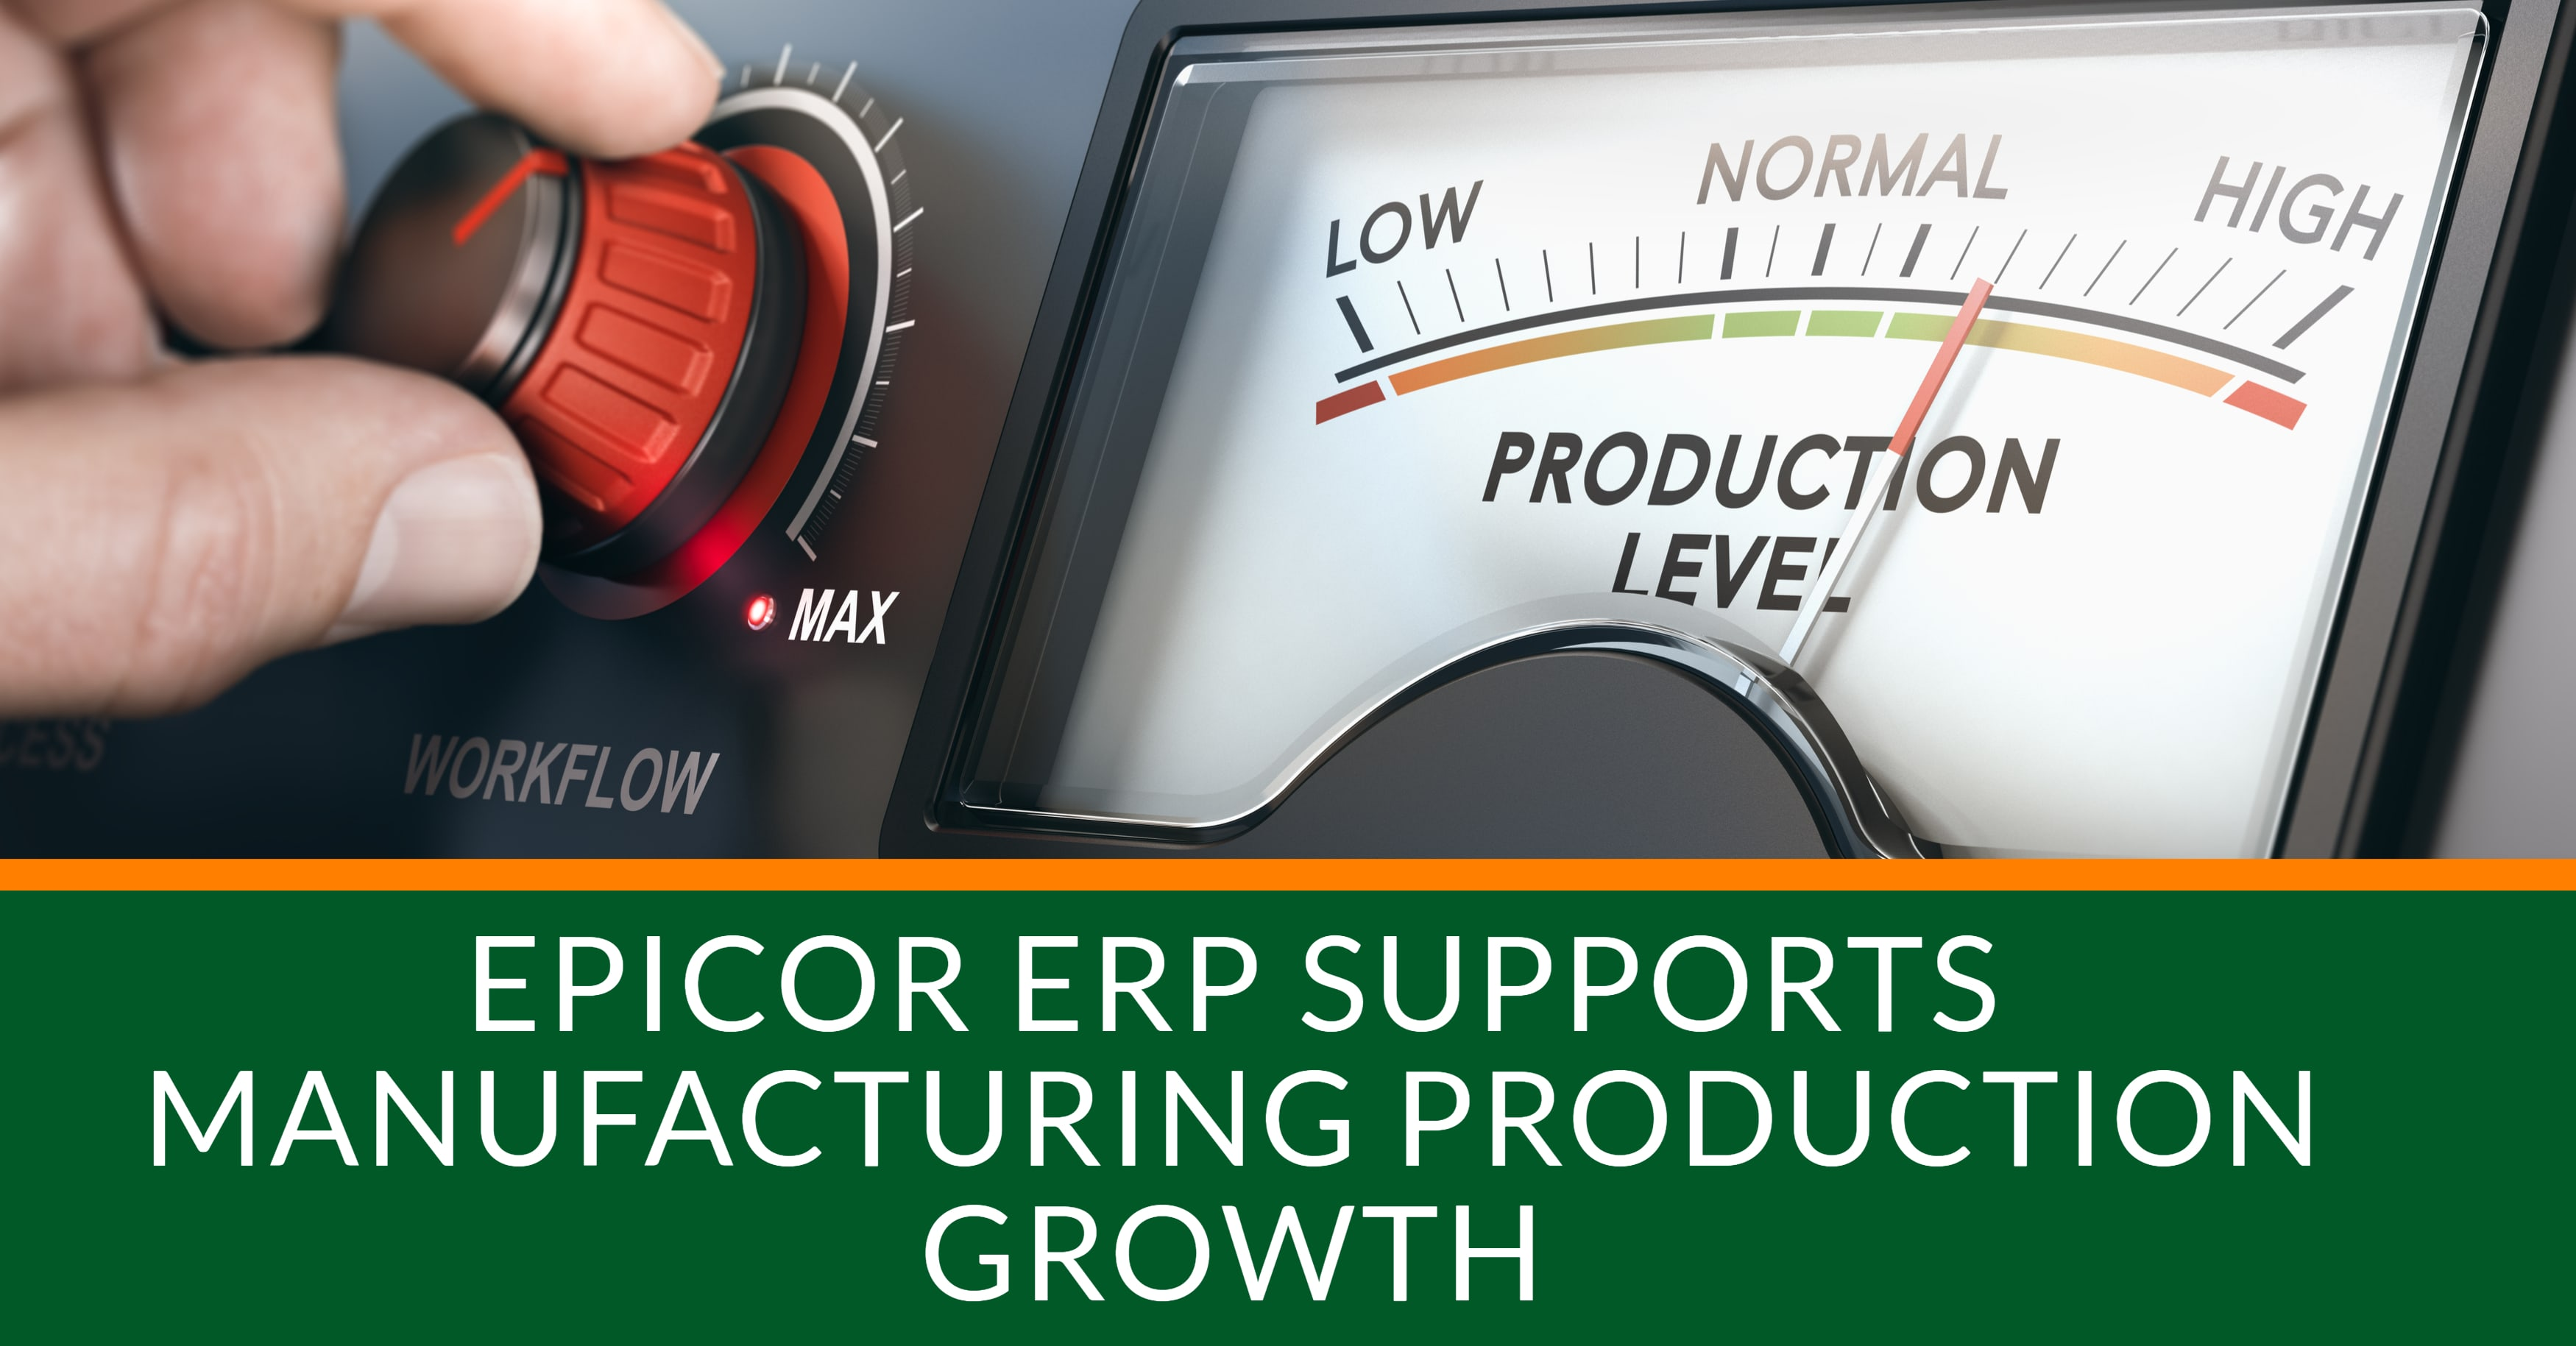 Are You Prepared for Manufacturing Production Growth?